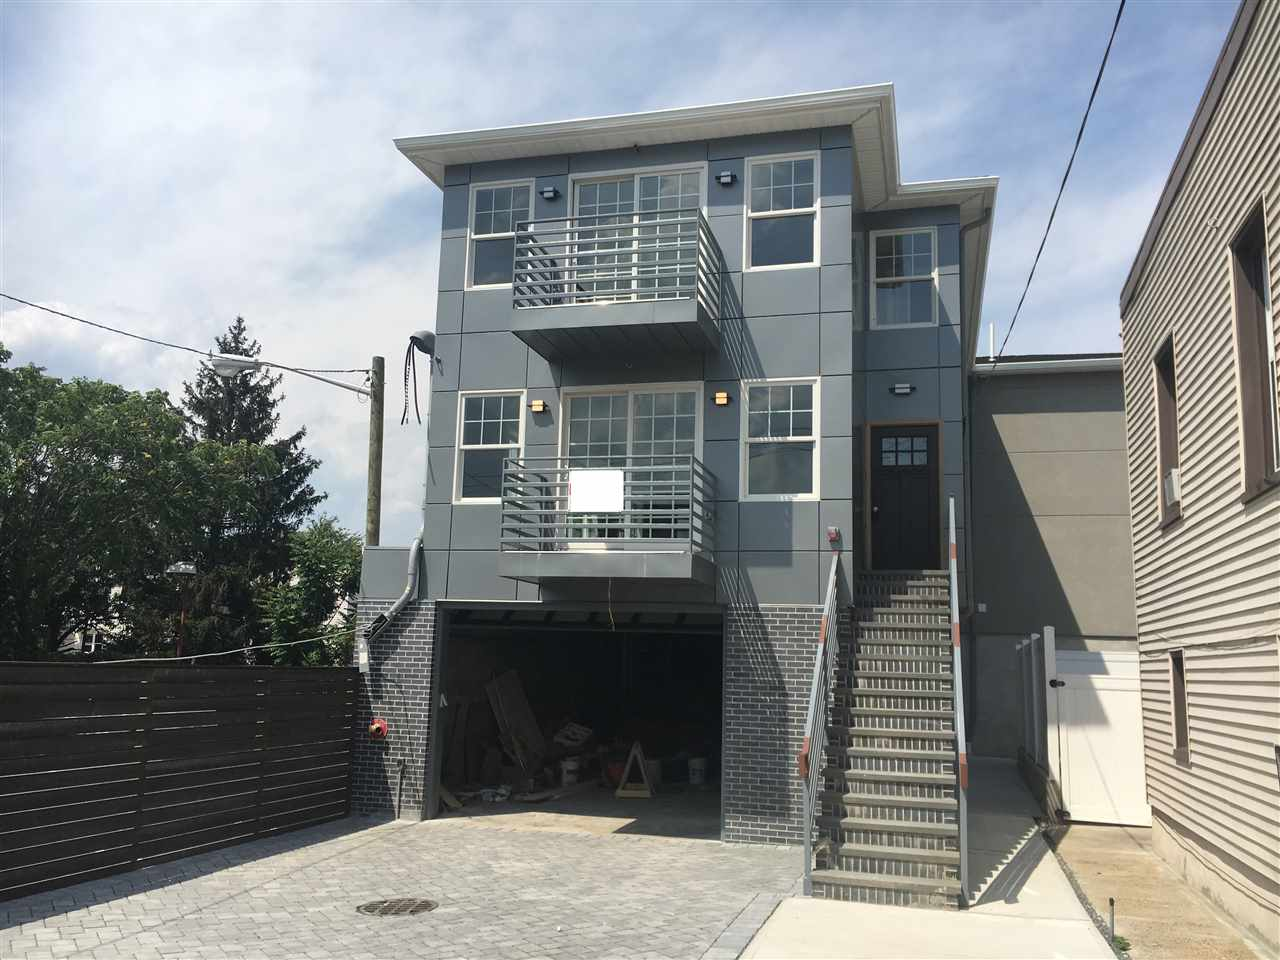 1206 5TH ST B, North Bergen, NJ 07047